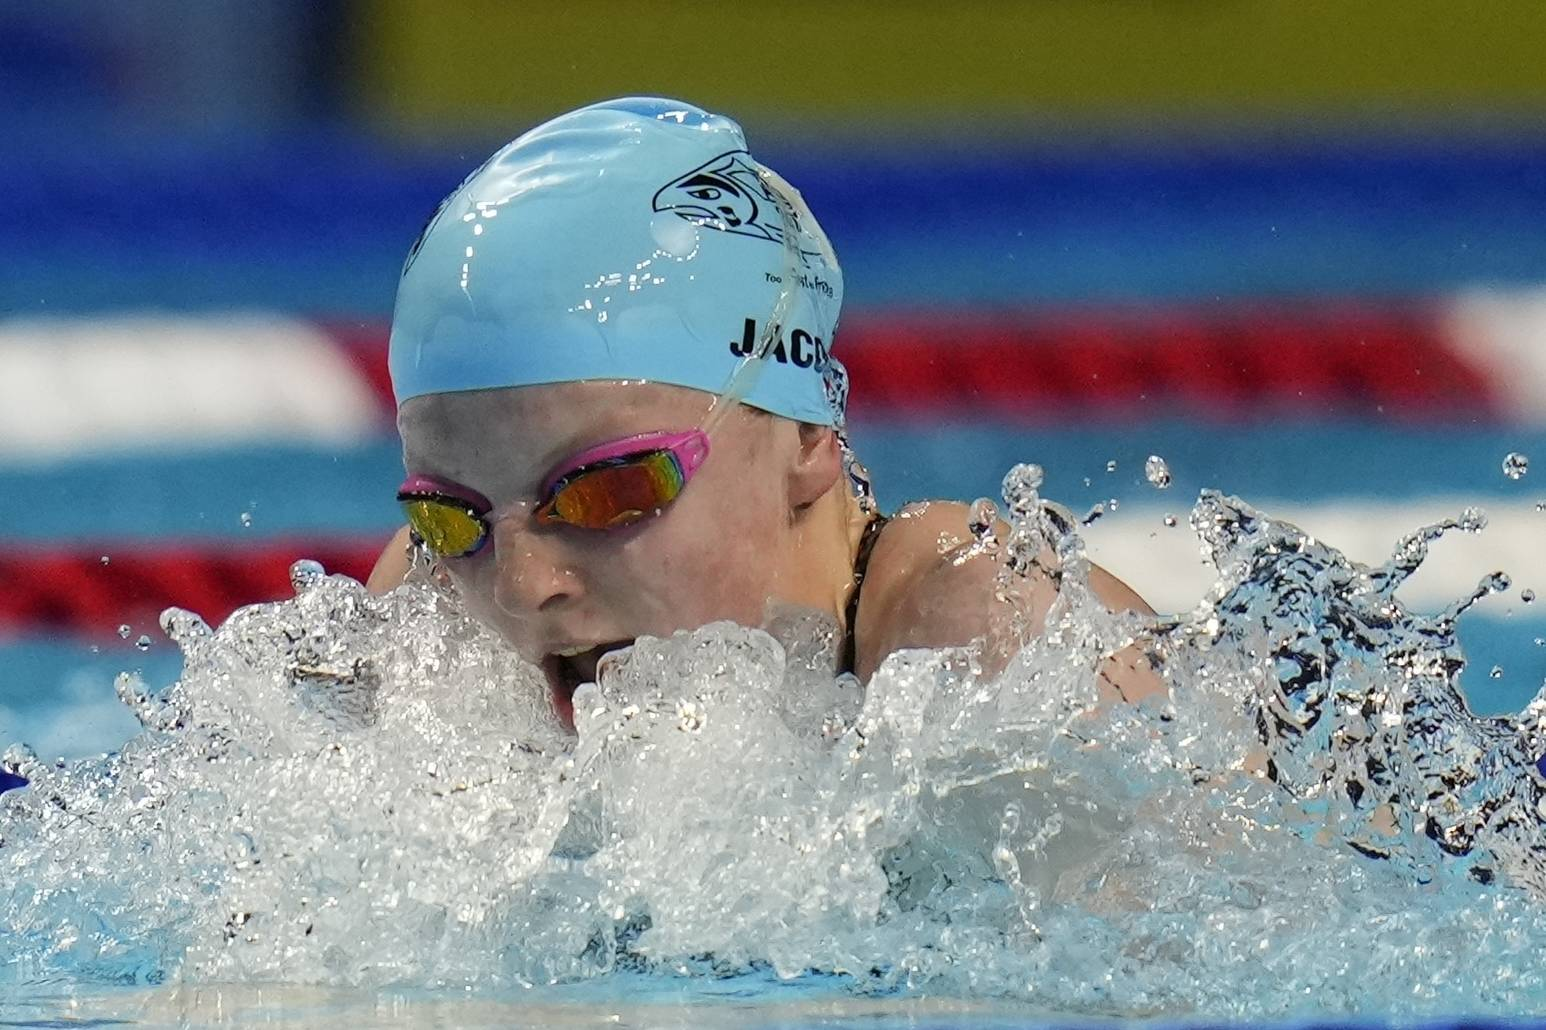 Lydia Jacoby participates in the Women's 100 Breaststroke during wave 2 of the U.S. Olympic Swim Trials on Monday, June 14, 2021, in Omaha, Neb. (AP Photo/Jeff Roberson)